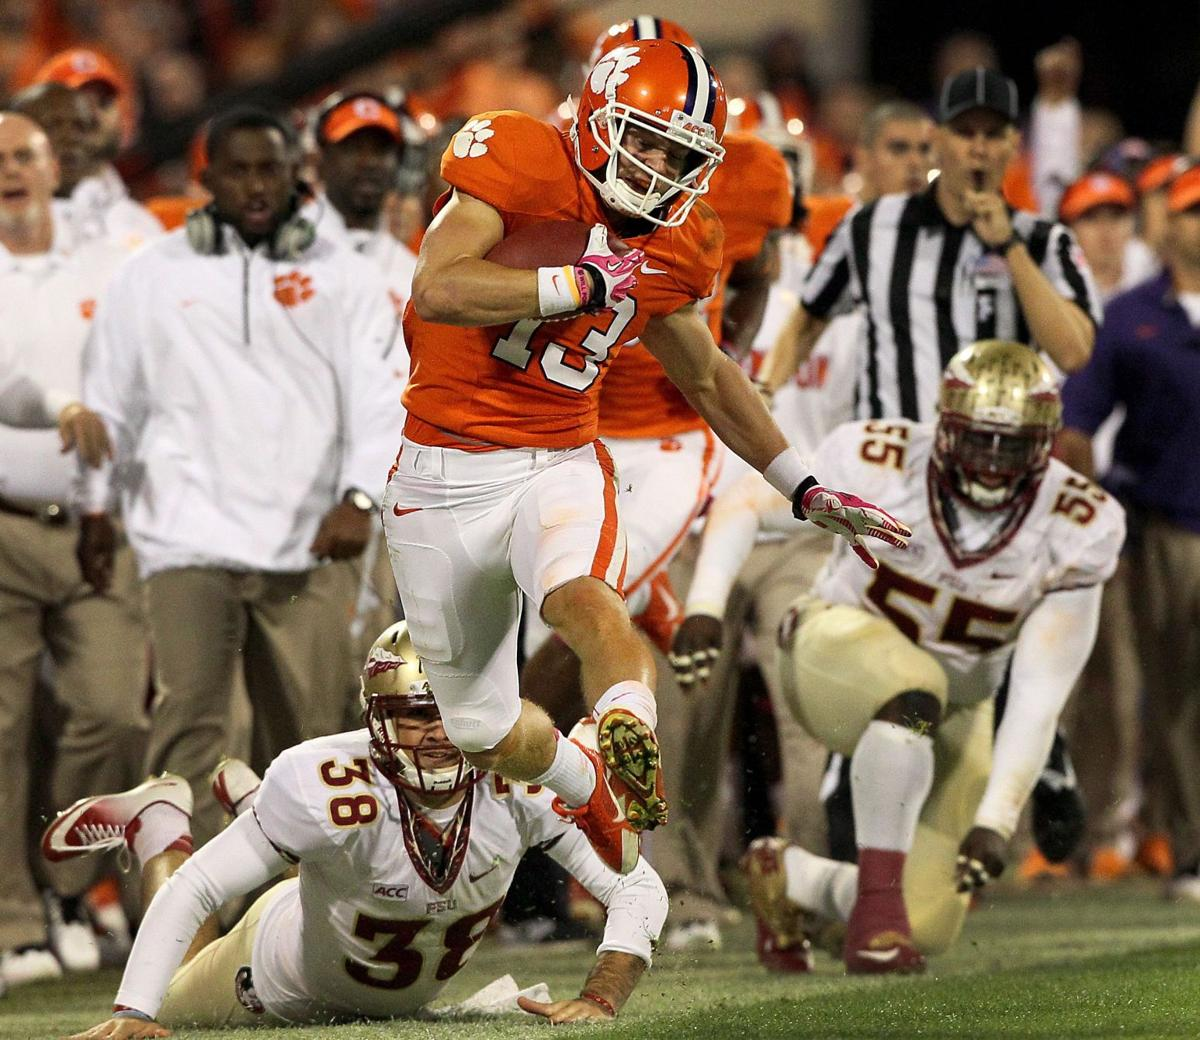 Point of no return in Clemson, which Humphries and company insist on fixing